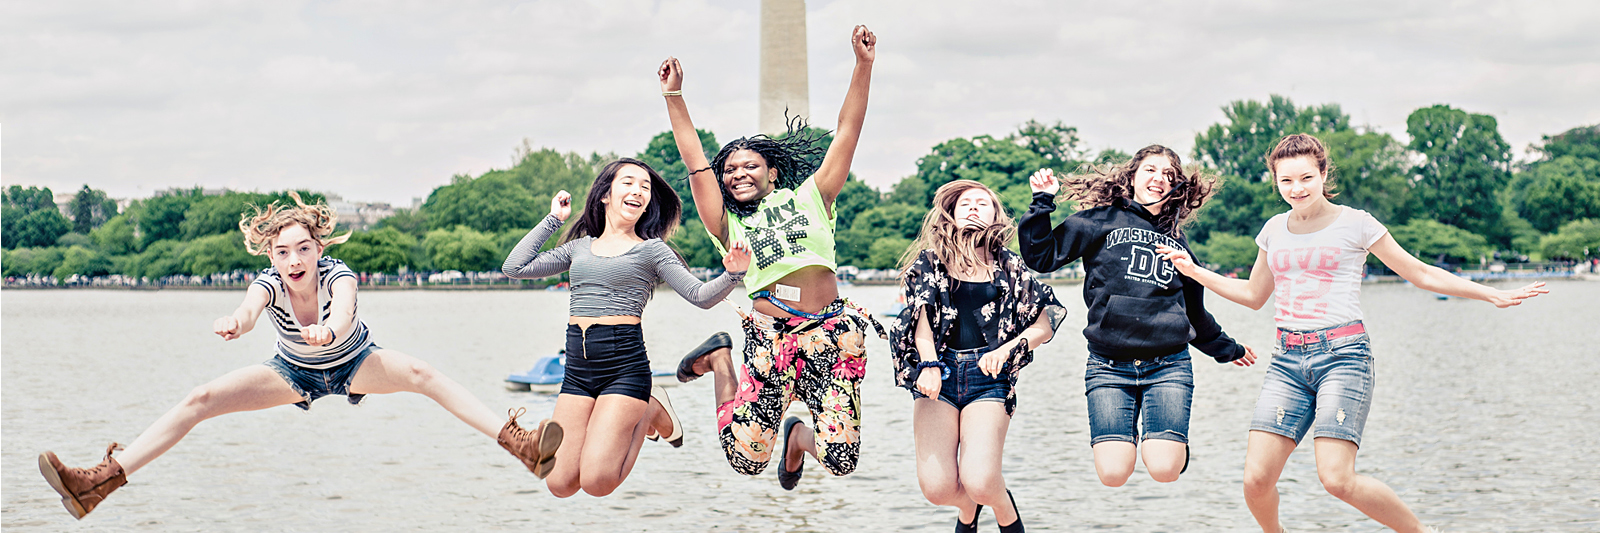 jumping picture in Washington DC